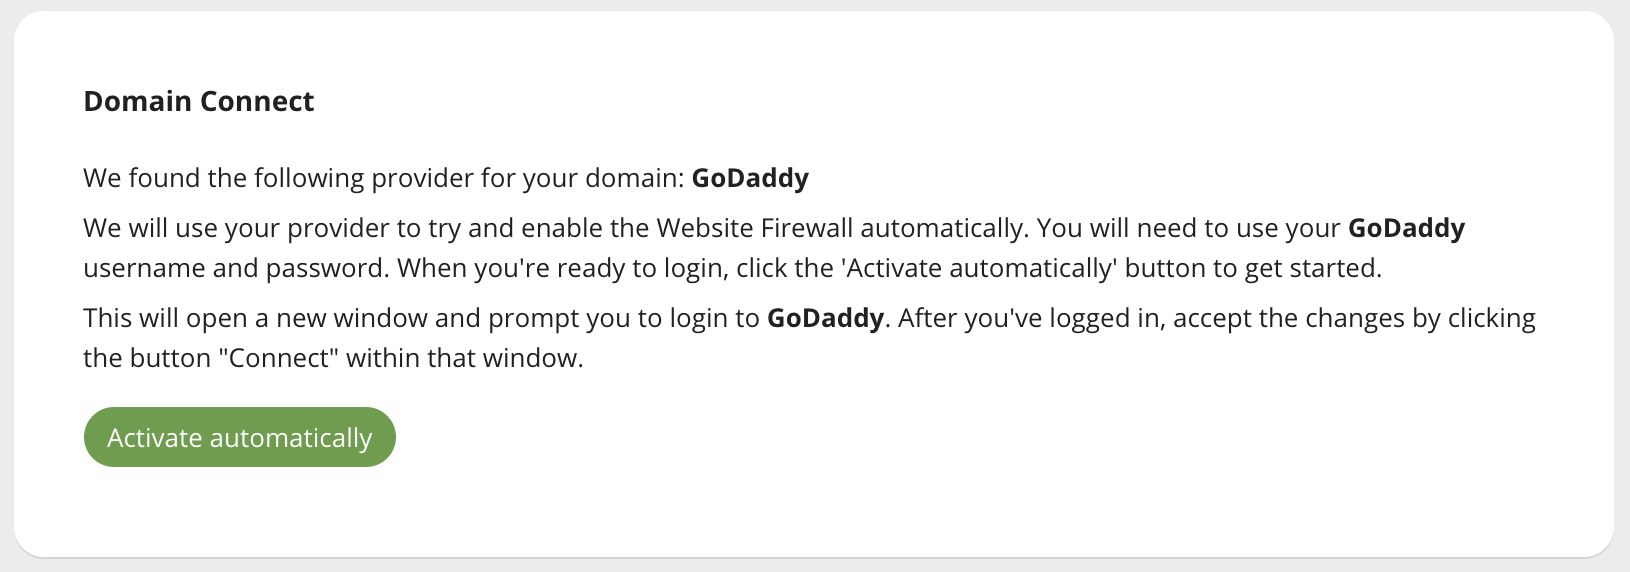 Website Firewall with GoDaddy